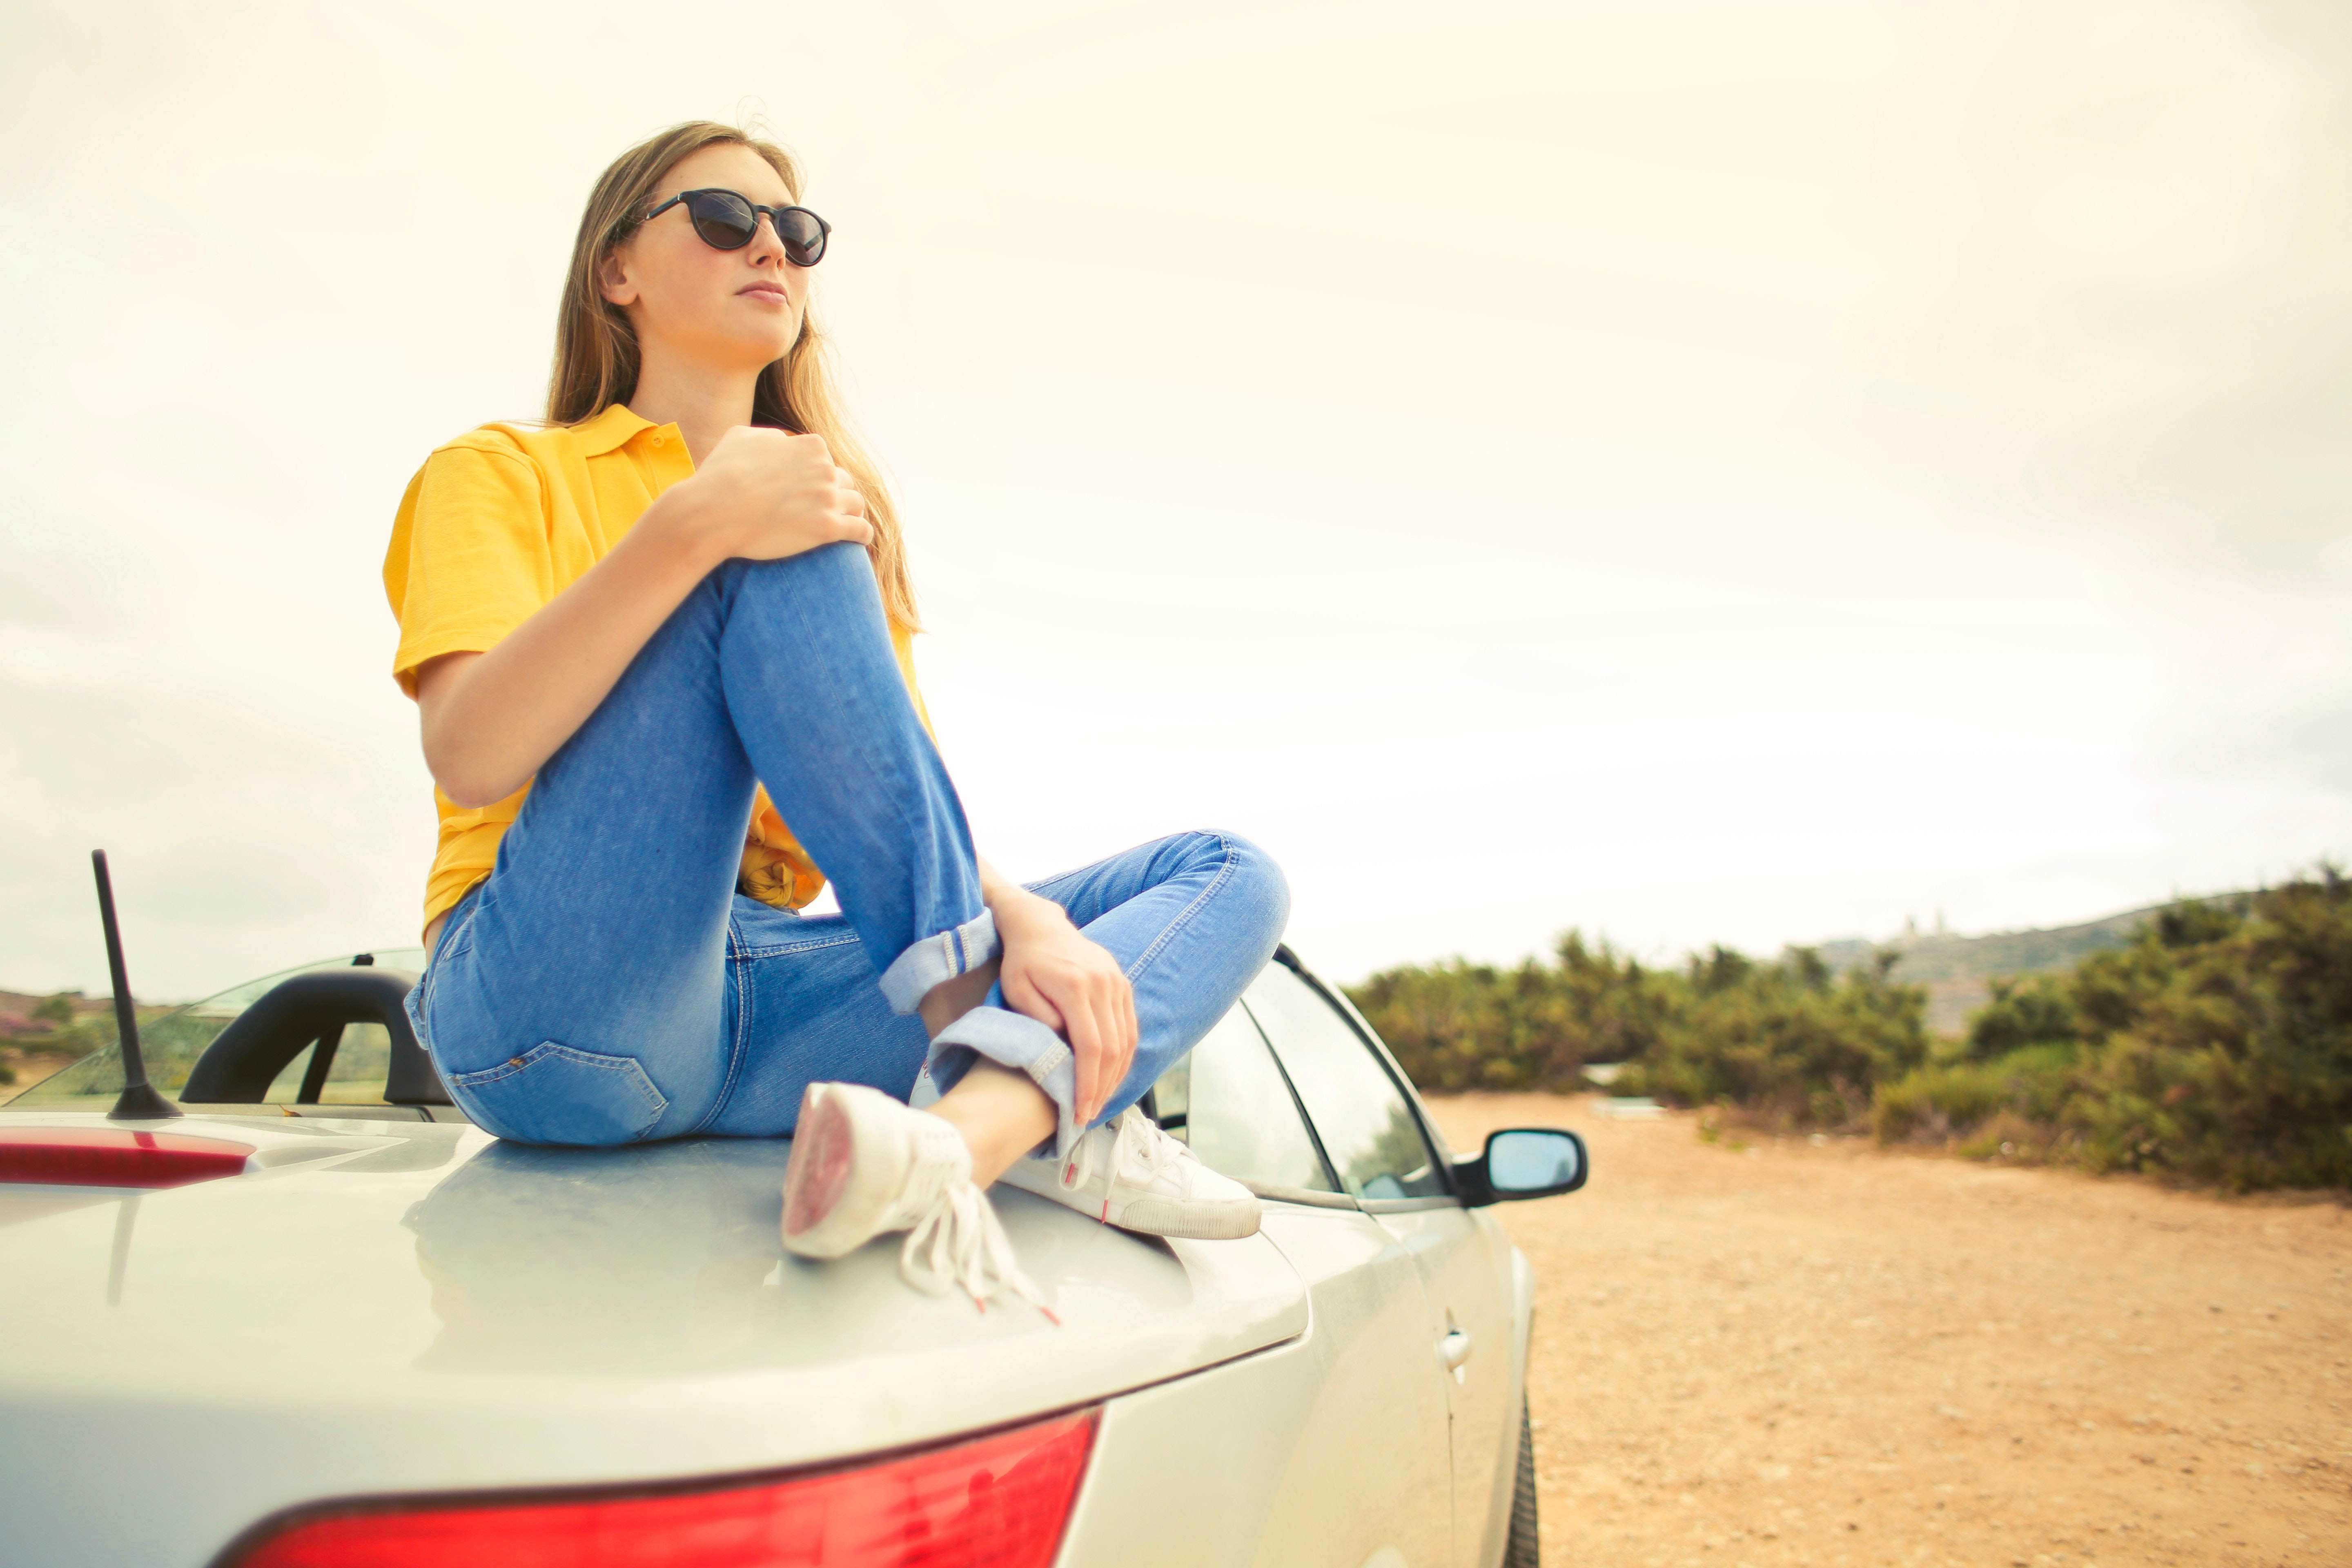 Woman Wears Yellow Shirt and Blue Denim Jeans Sits on Silver Car, Adult, Relaxation, Woman, View, HQ Photo